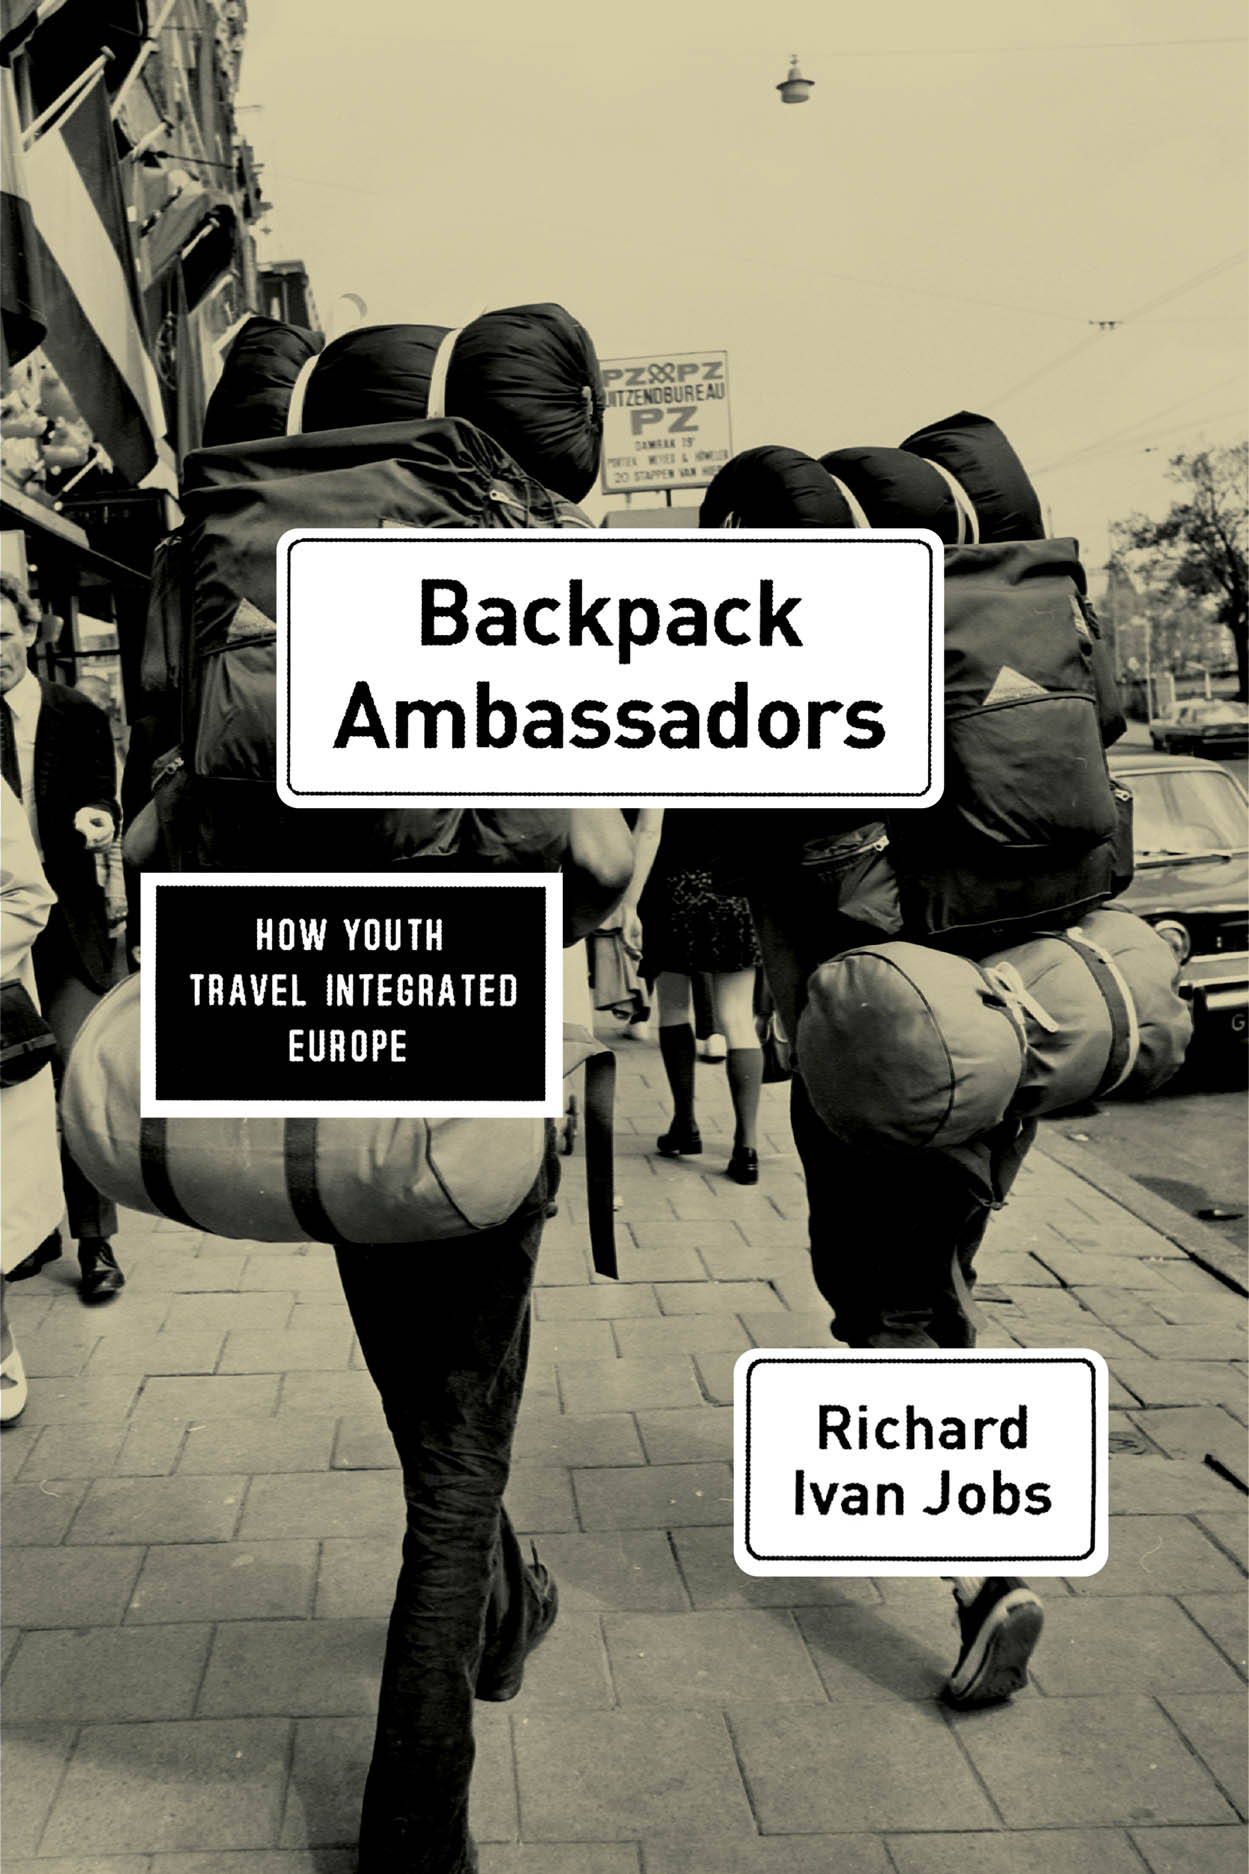 Backpack Ambassadors